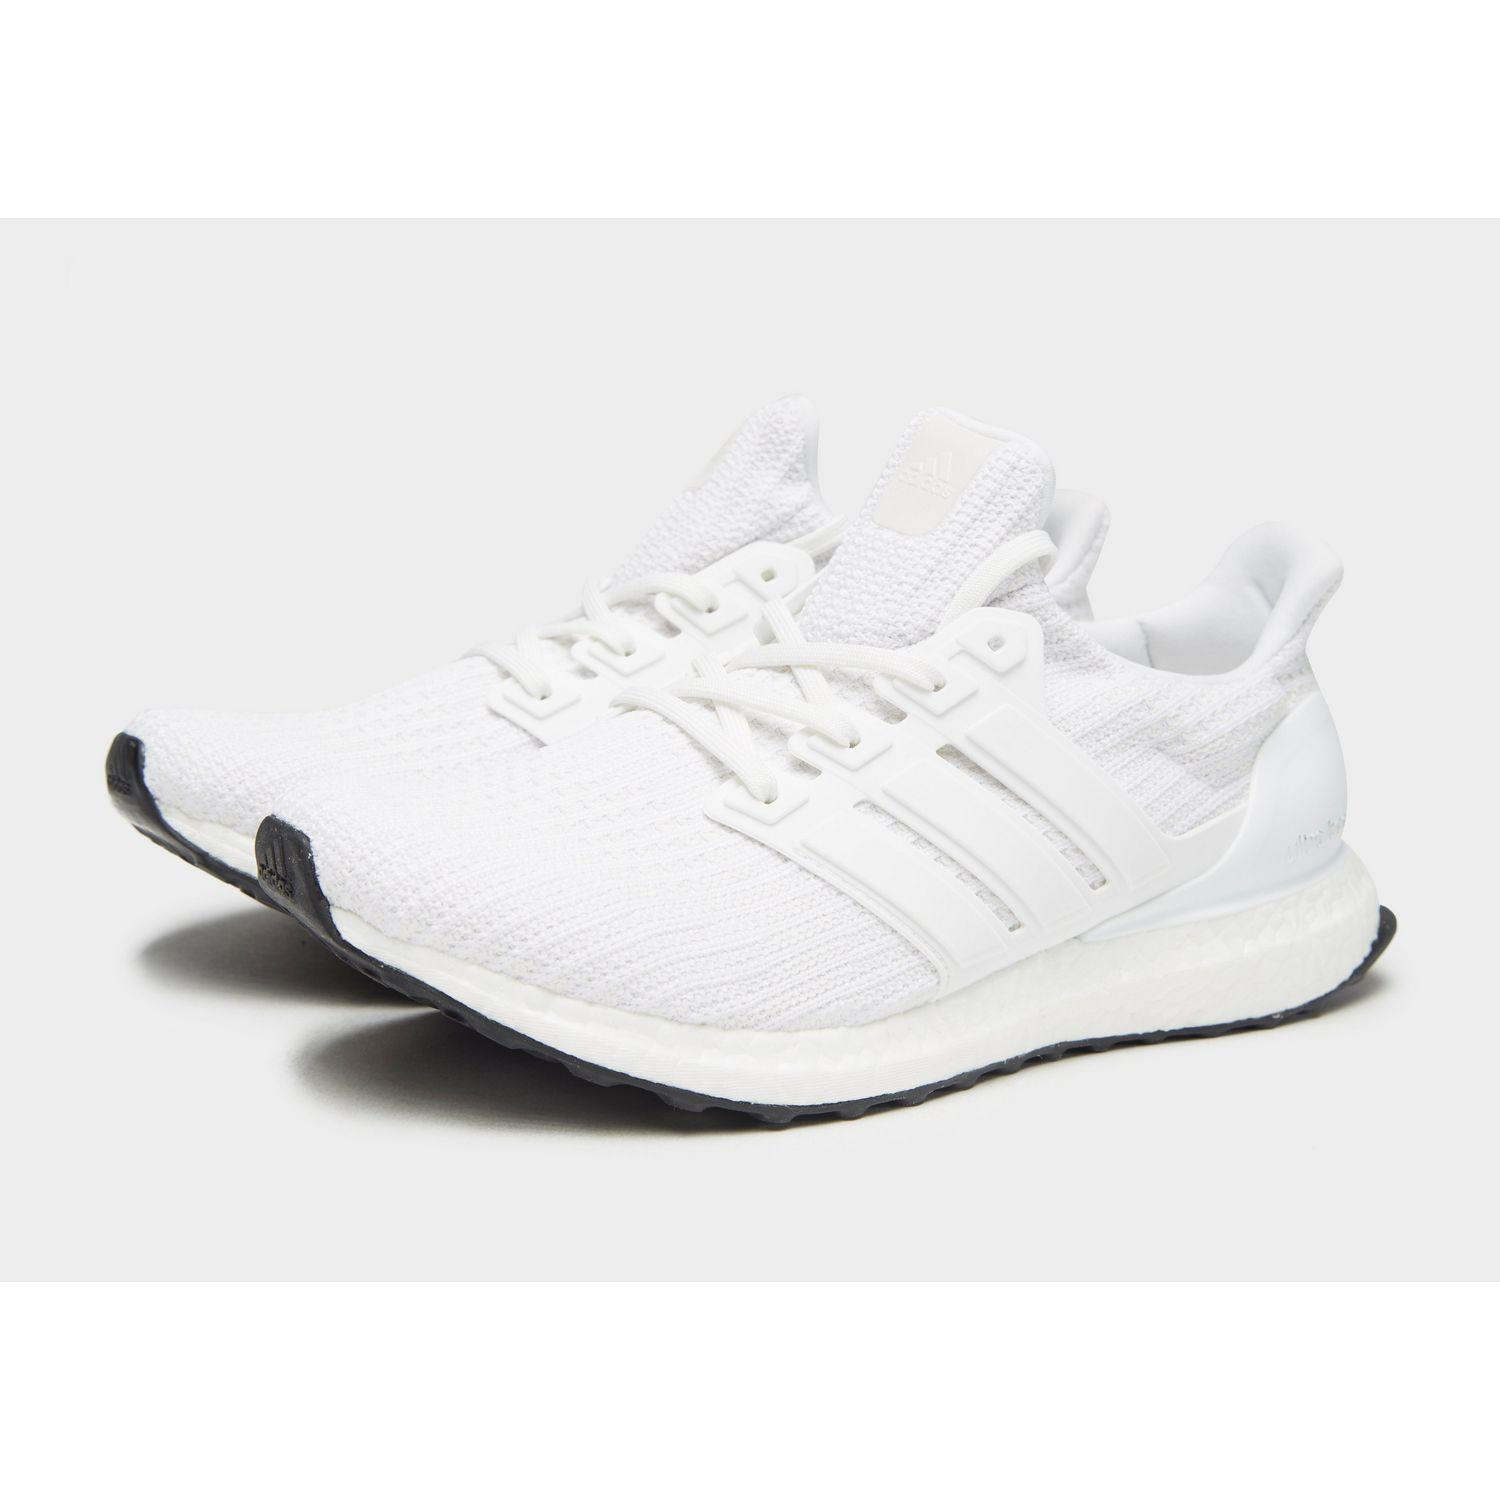 a9587dff8 Adidas - White Ultra Boost for Men - Lyst. View fullscreen